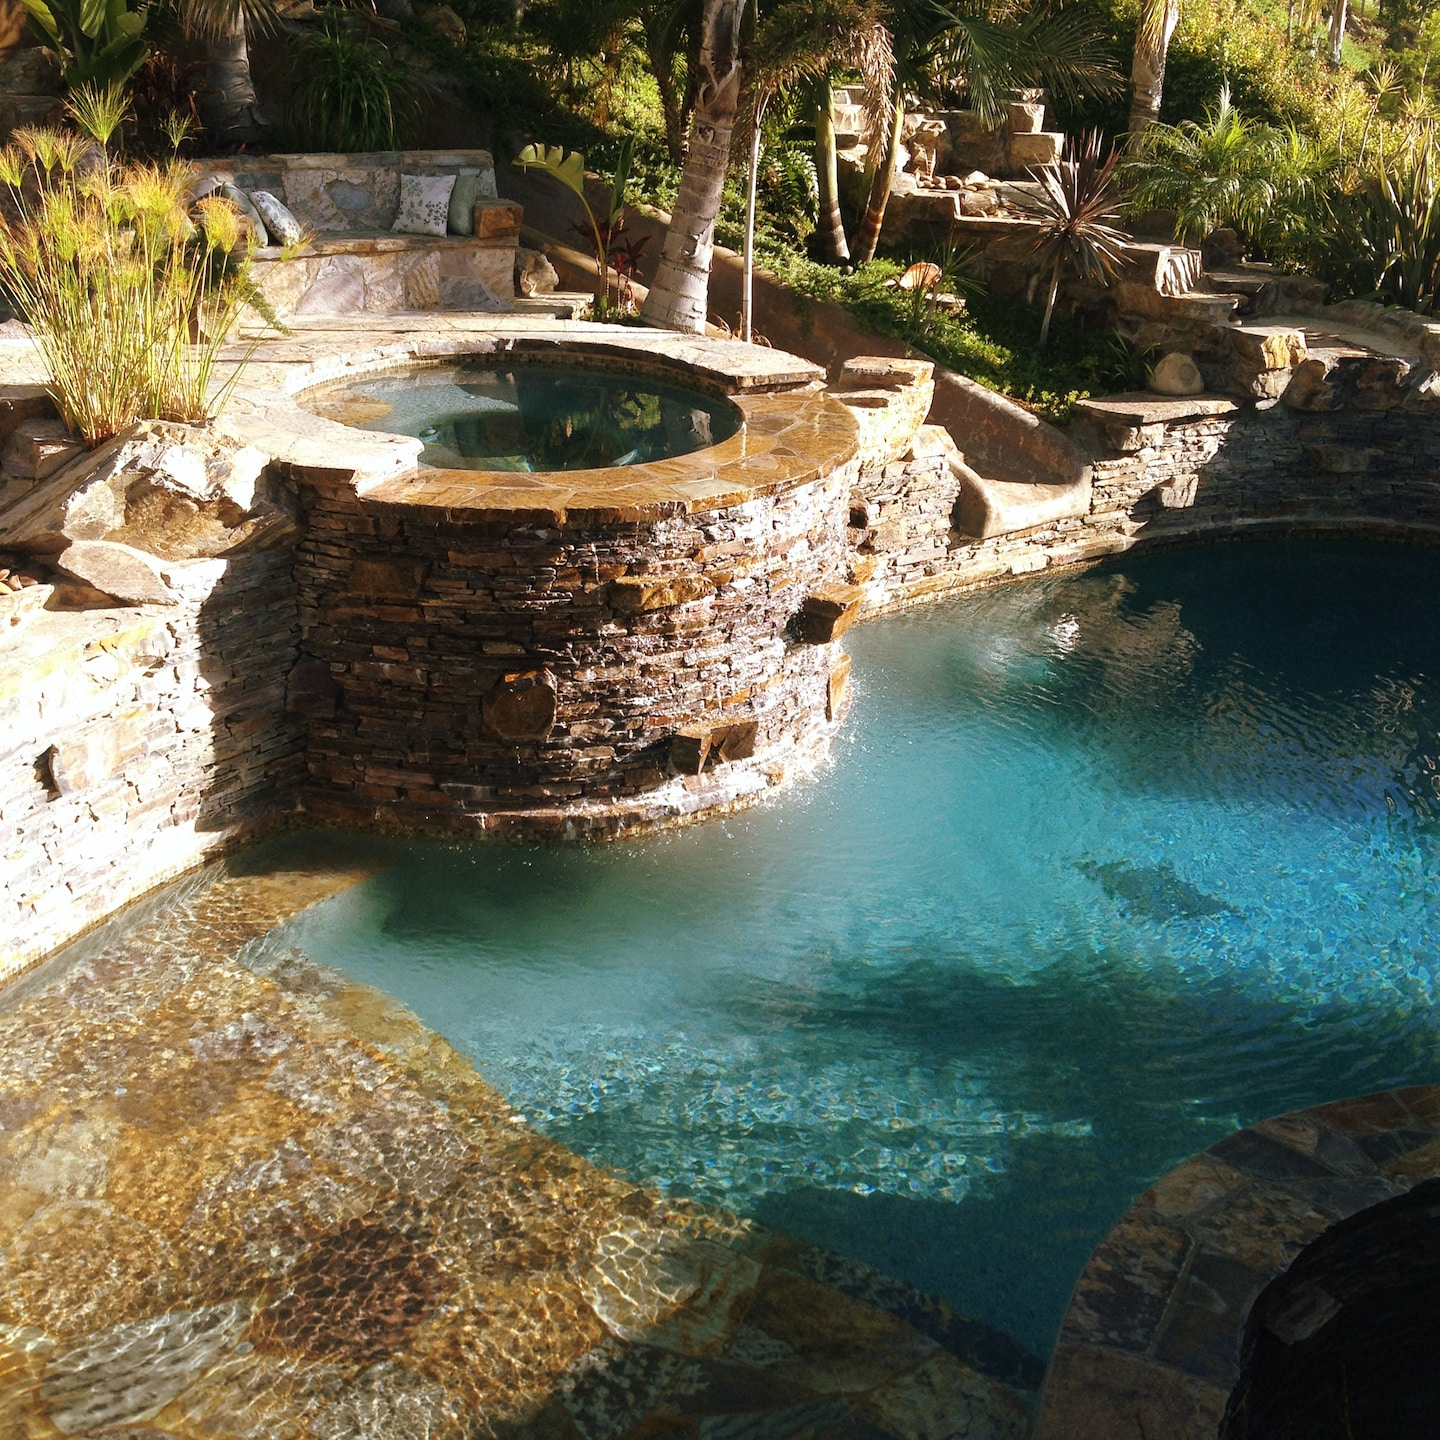 Allstate Pools Spas Reviews Thousand Oaks Ca Angie S List